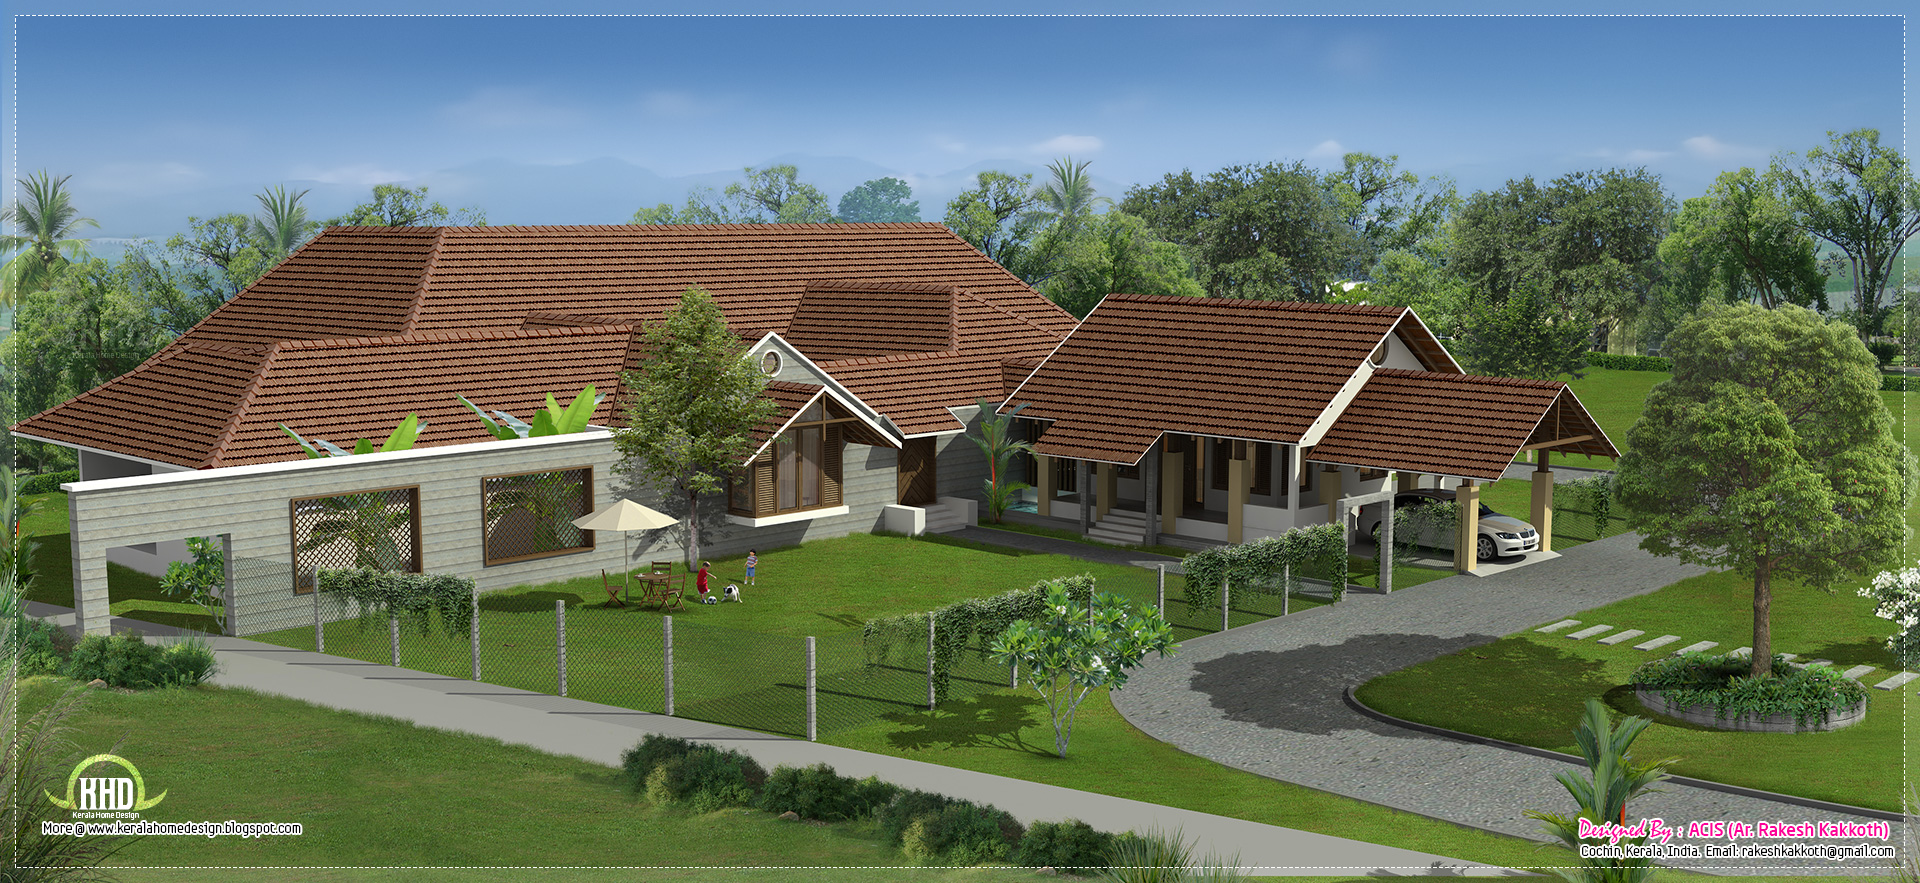 Luxury bungalow exterior design kerala home design and for Luxury house exterior designs